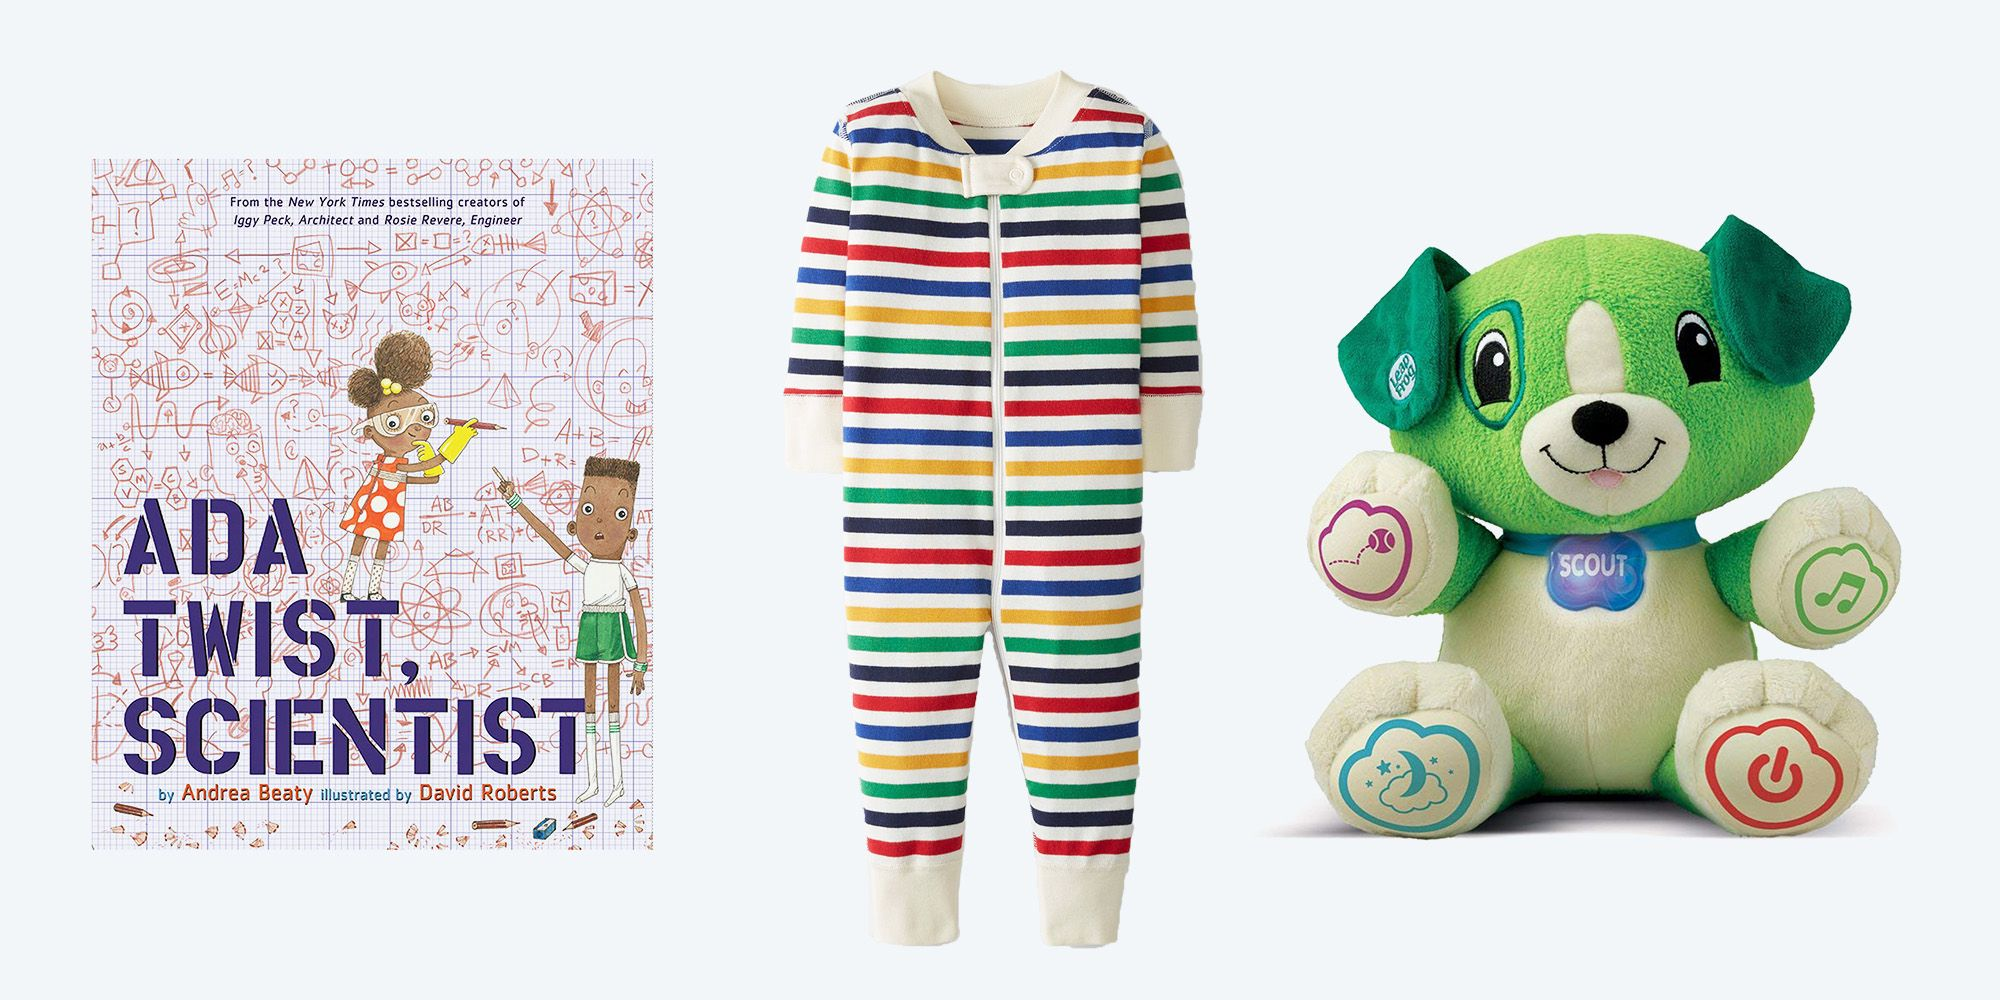 image  sc 1 st  Elle : great christmas gifts for kids - princetonregatta.org